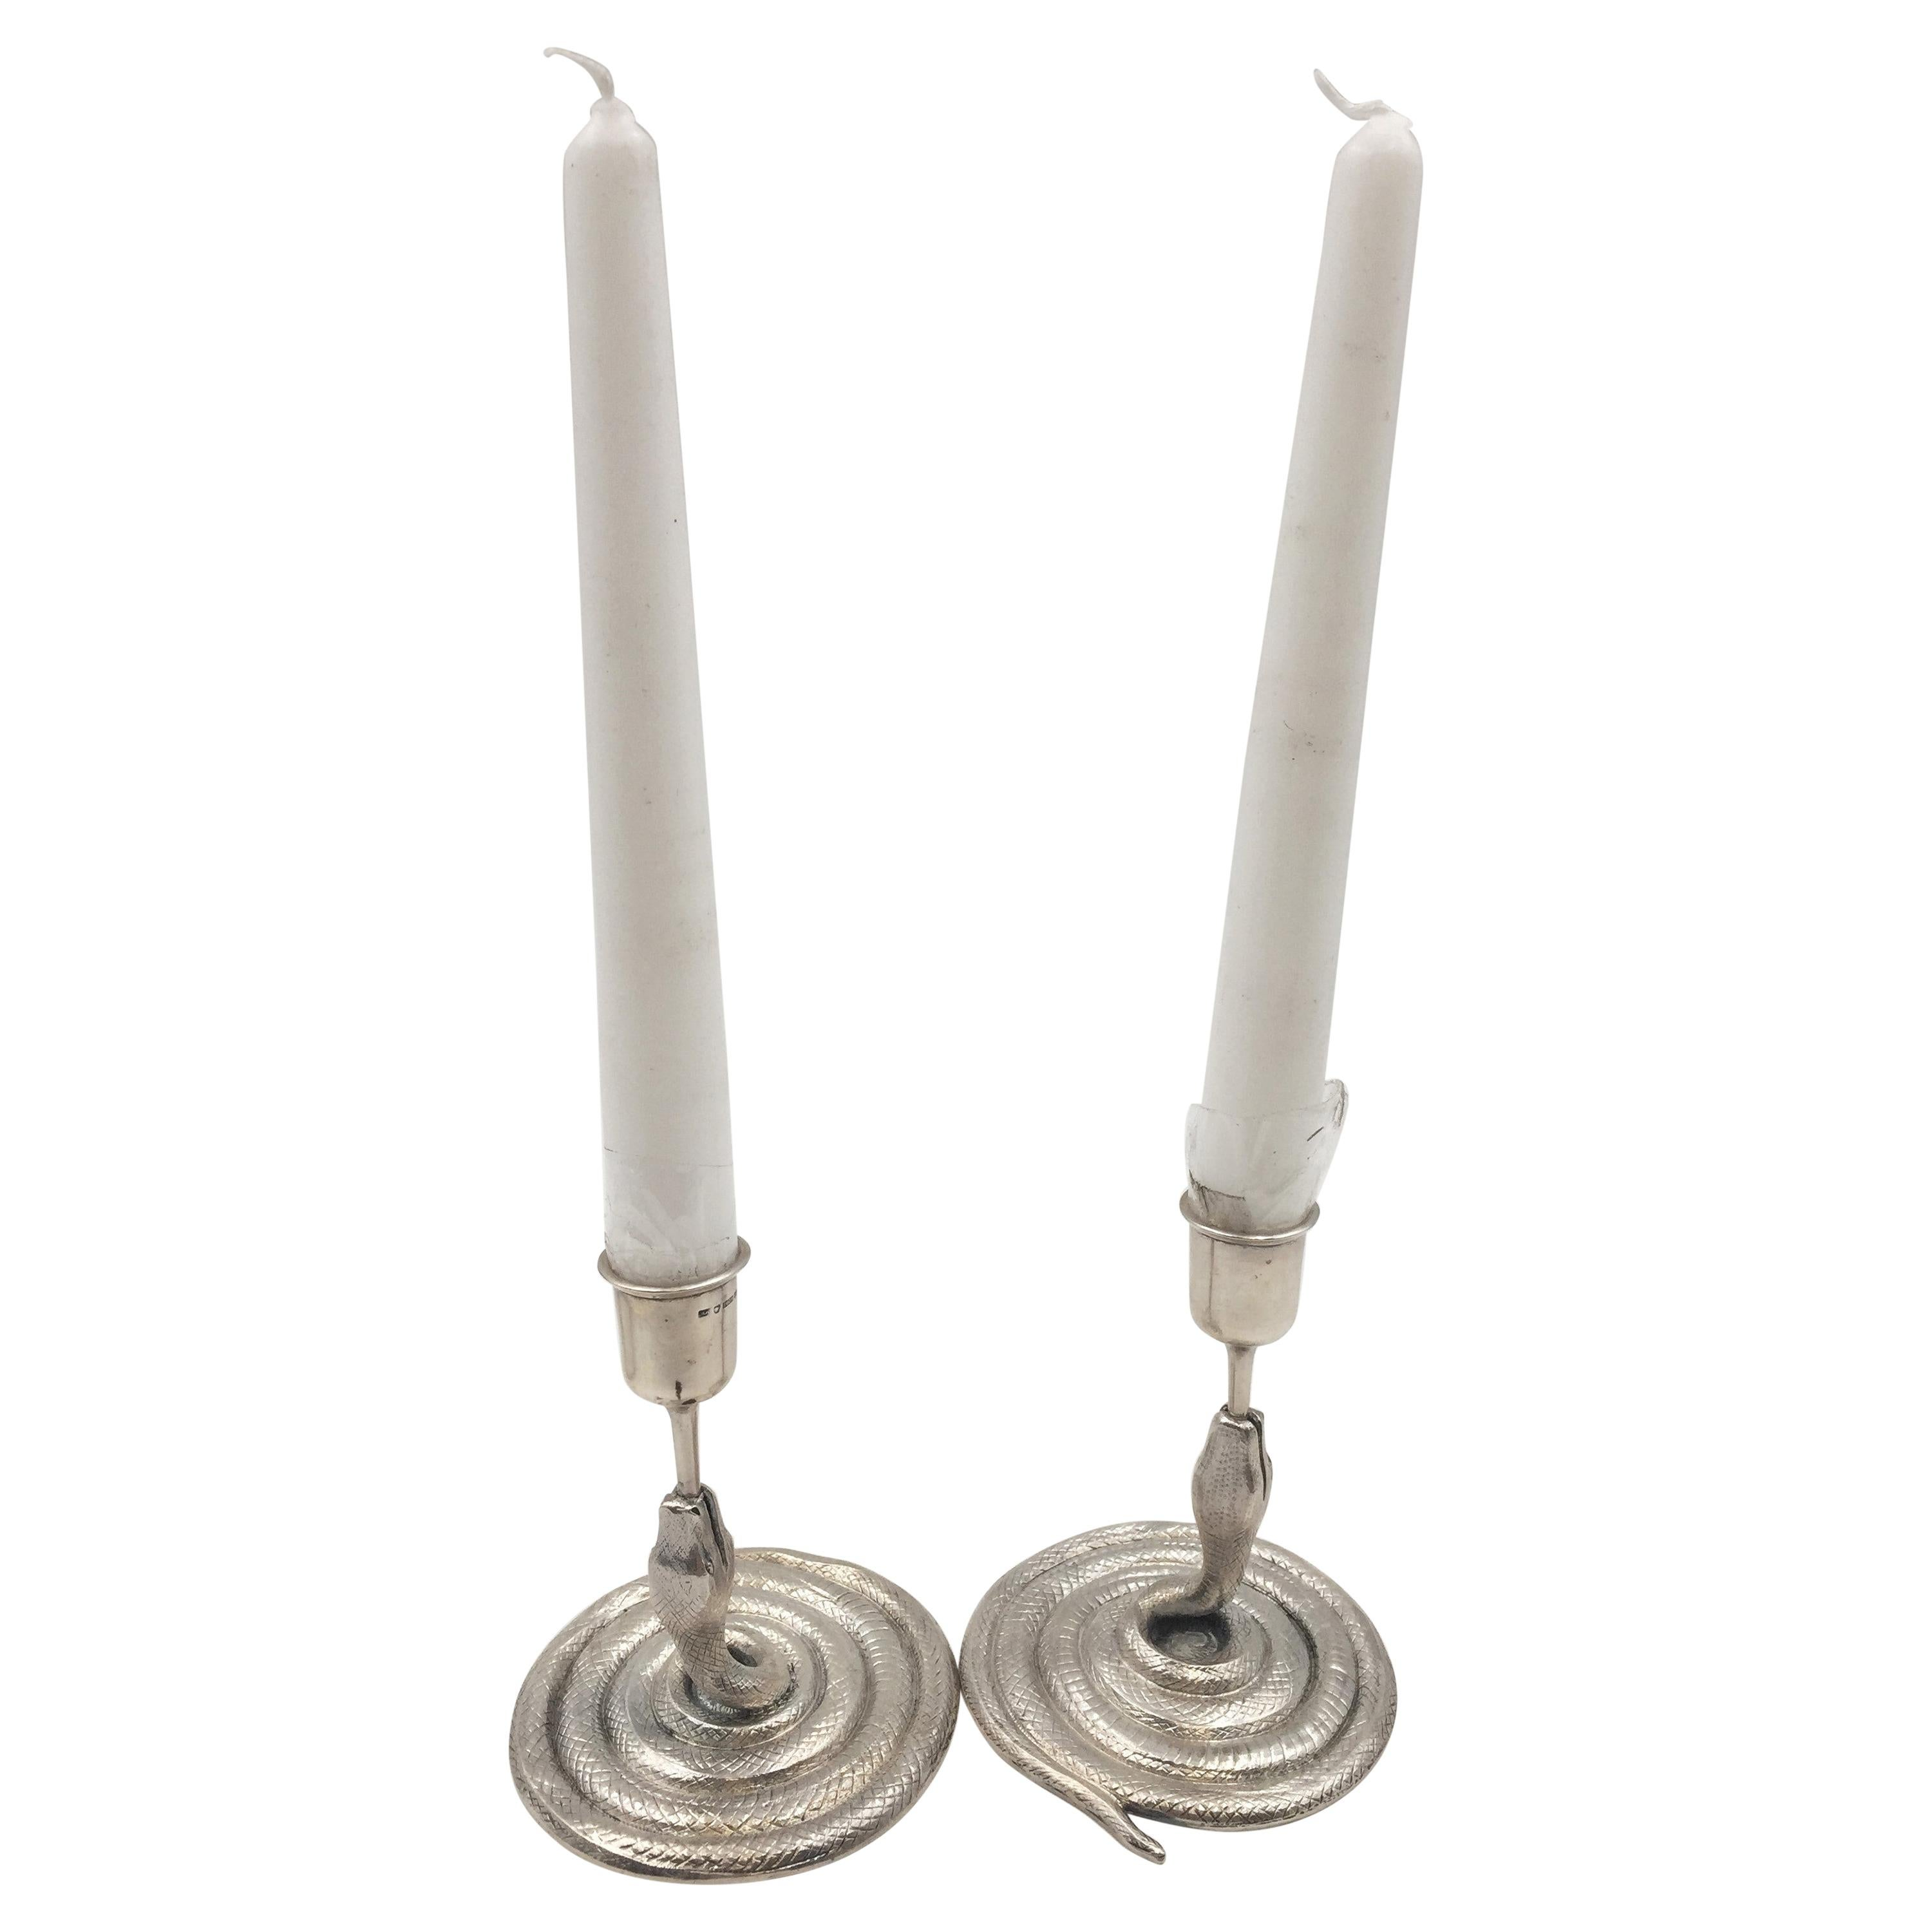 Pair of Silver Serpent Candlesticks in Mid-Century Modern Style from 1954